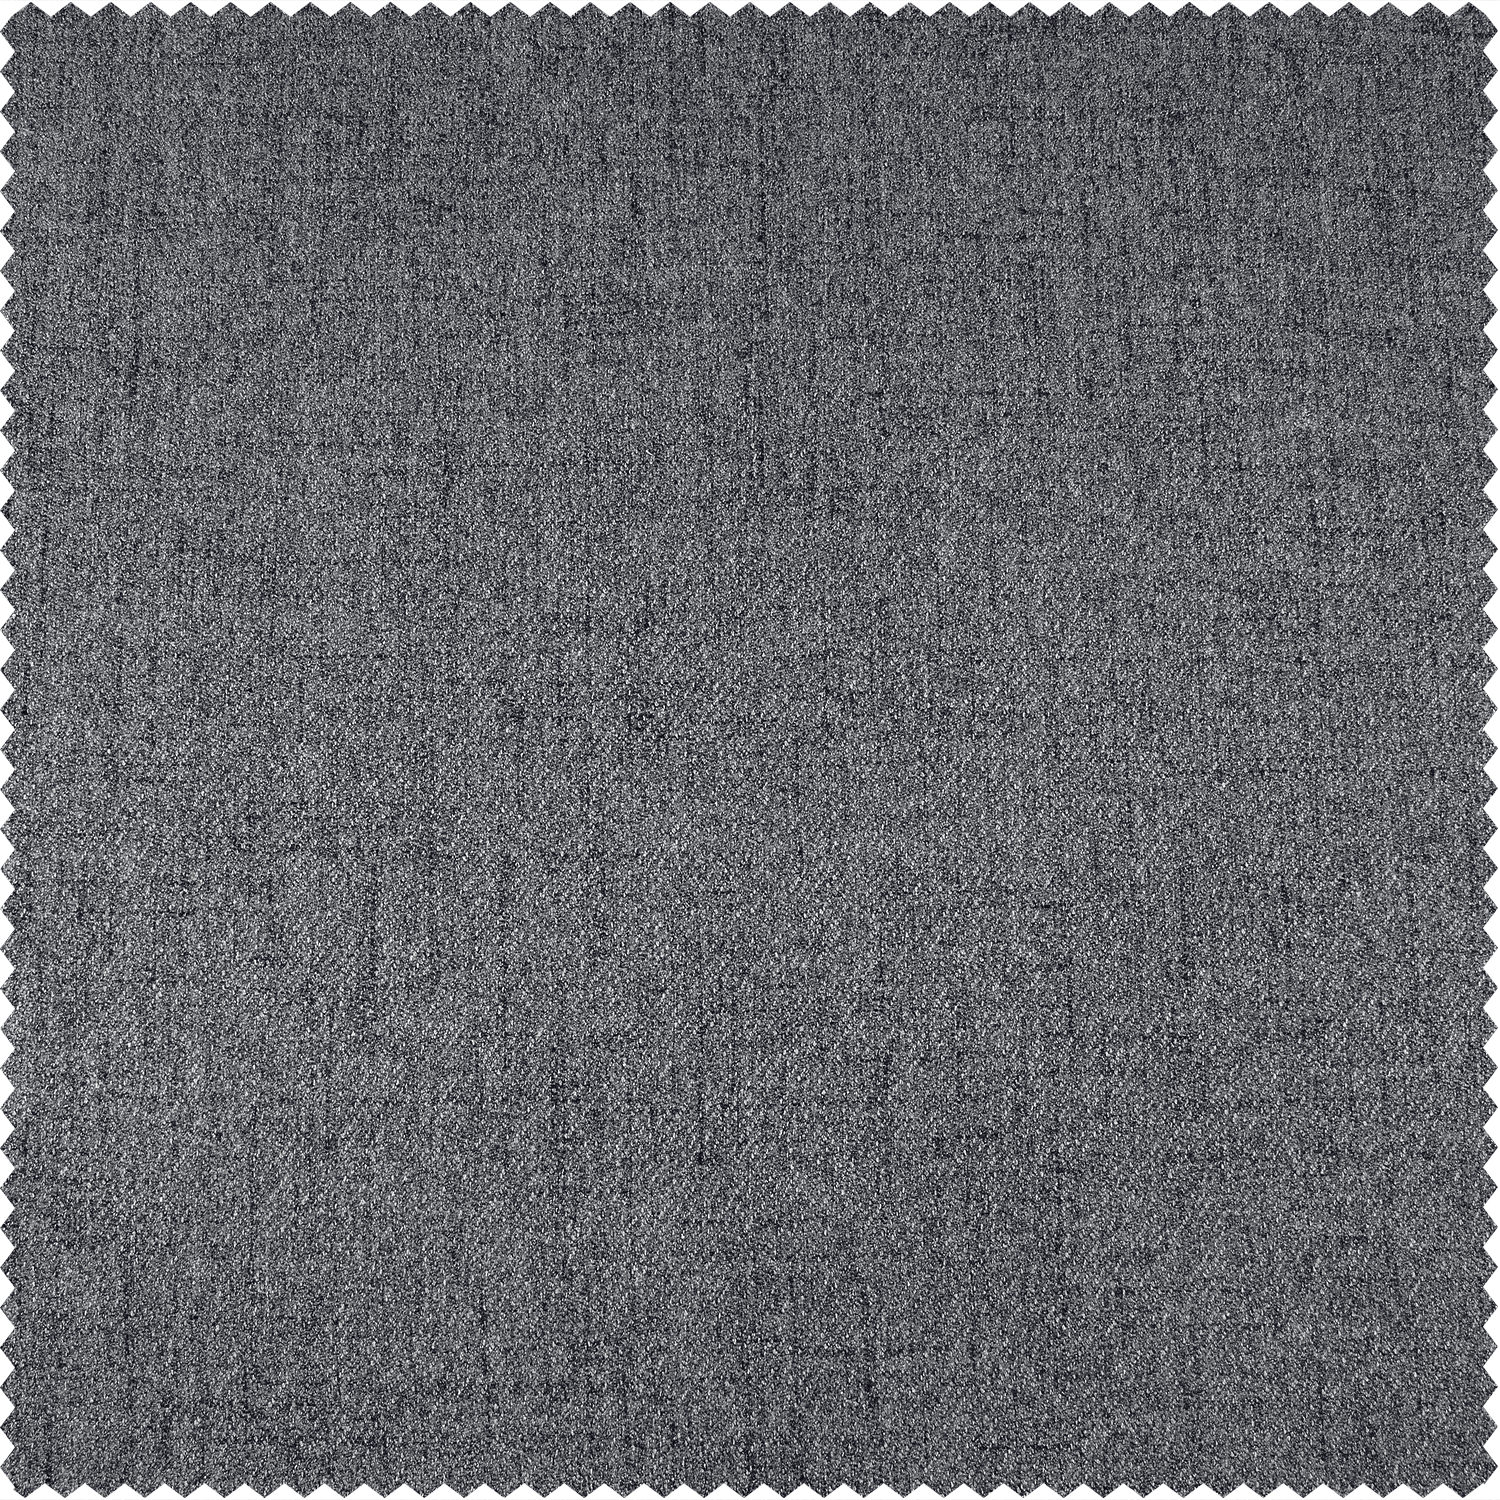 Modern Grey Thermal Room Darkening Heathered Italian Woolen Weave Swatch